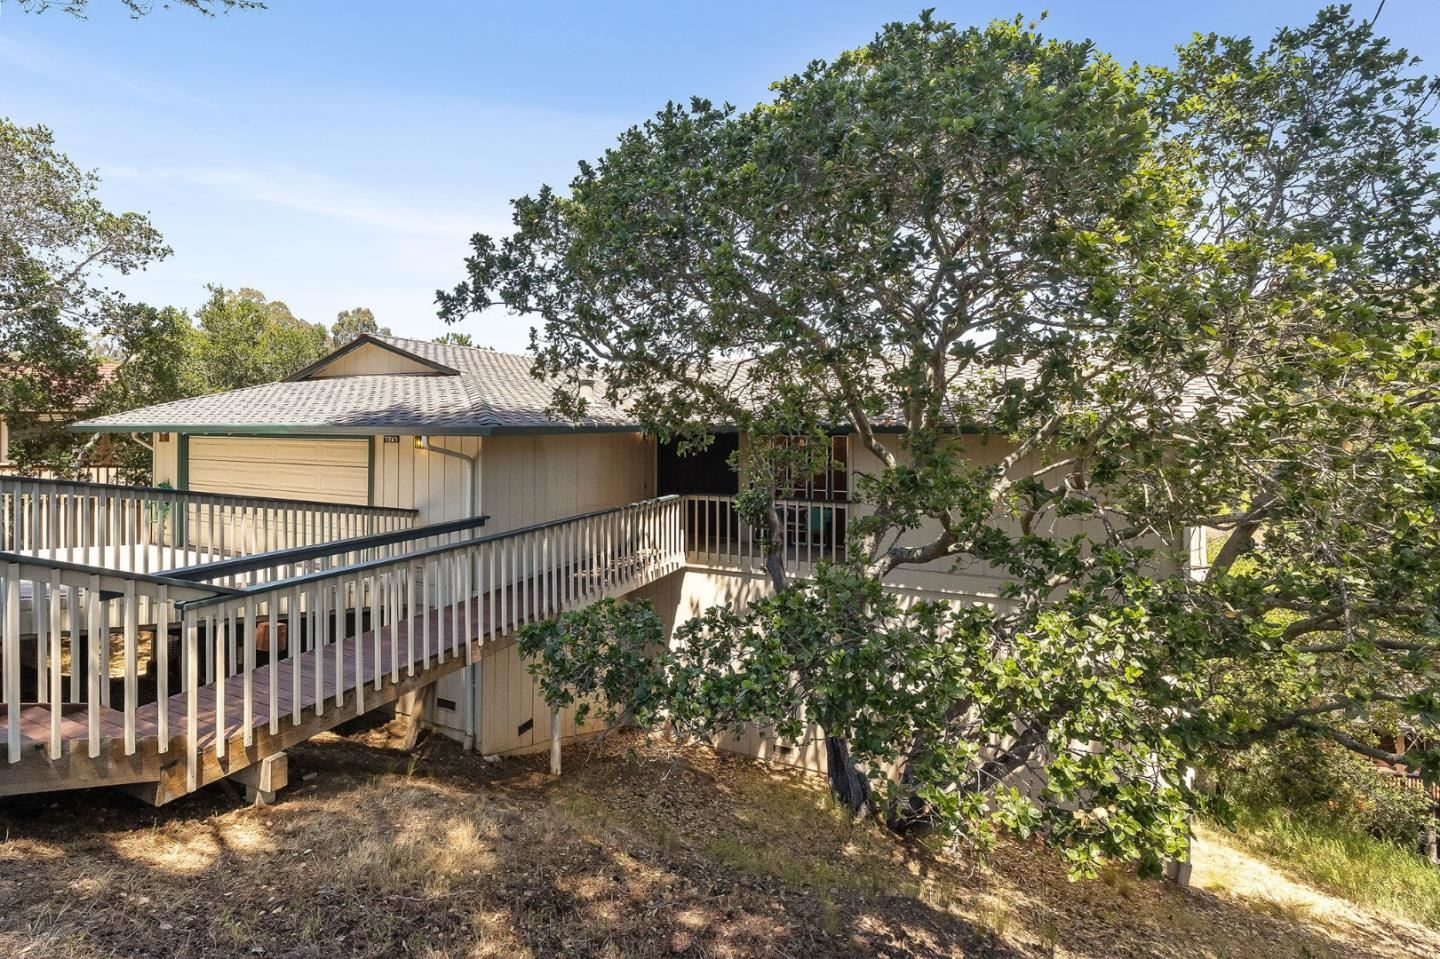 Photo for 1247 North Road, BELMONT, CA 94002 (MLS # ML81841945)